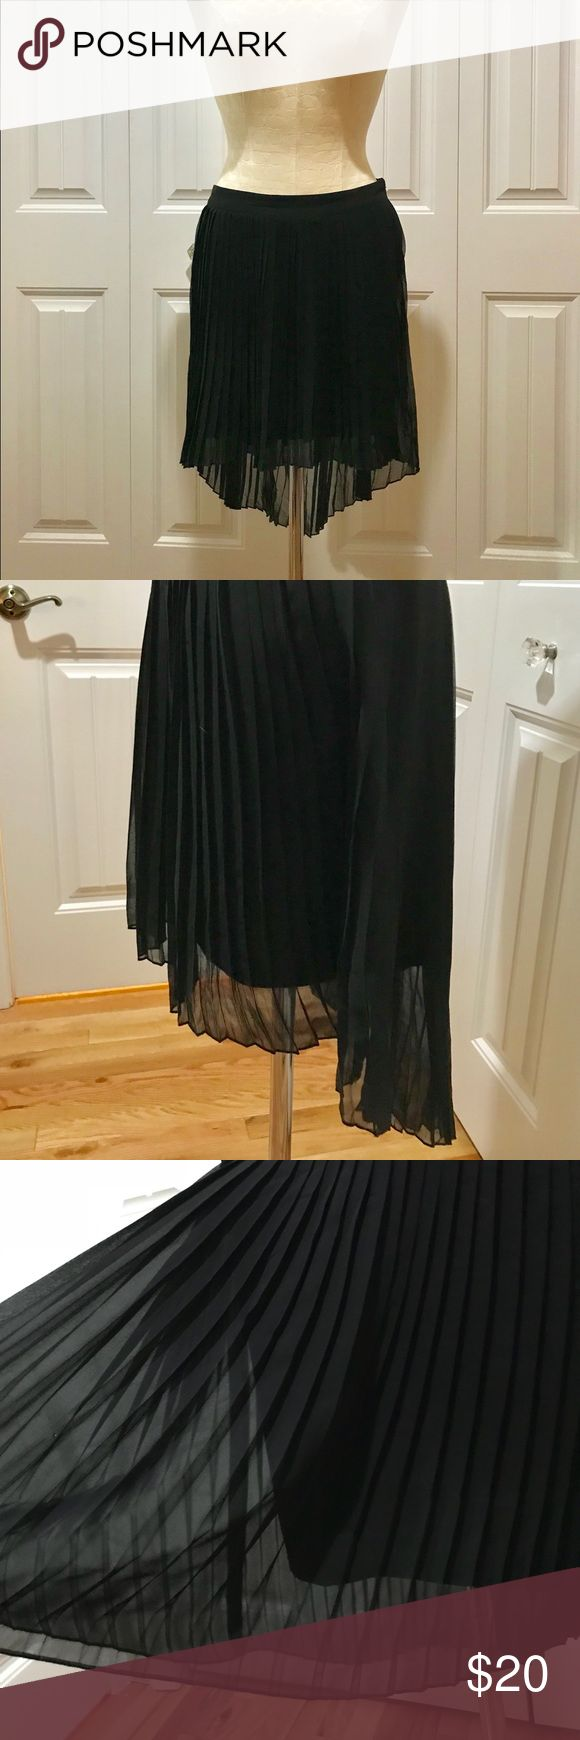 Black Pleated High-Low Skirt This is an American Eagle's high-low pleated black skirt. It has a shear pleated layer with a soft silky matte liner underneath. This skirt sits right at your waist and has a side zipper. It is a NEVER BEEN WORN piece. American Eagle Outfitters Skirts Asymmetrical